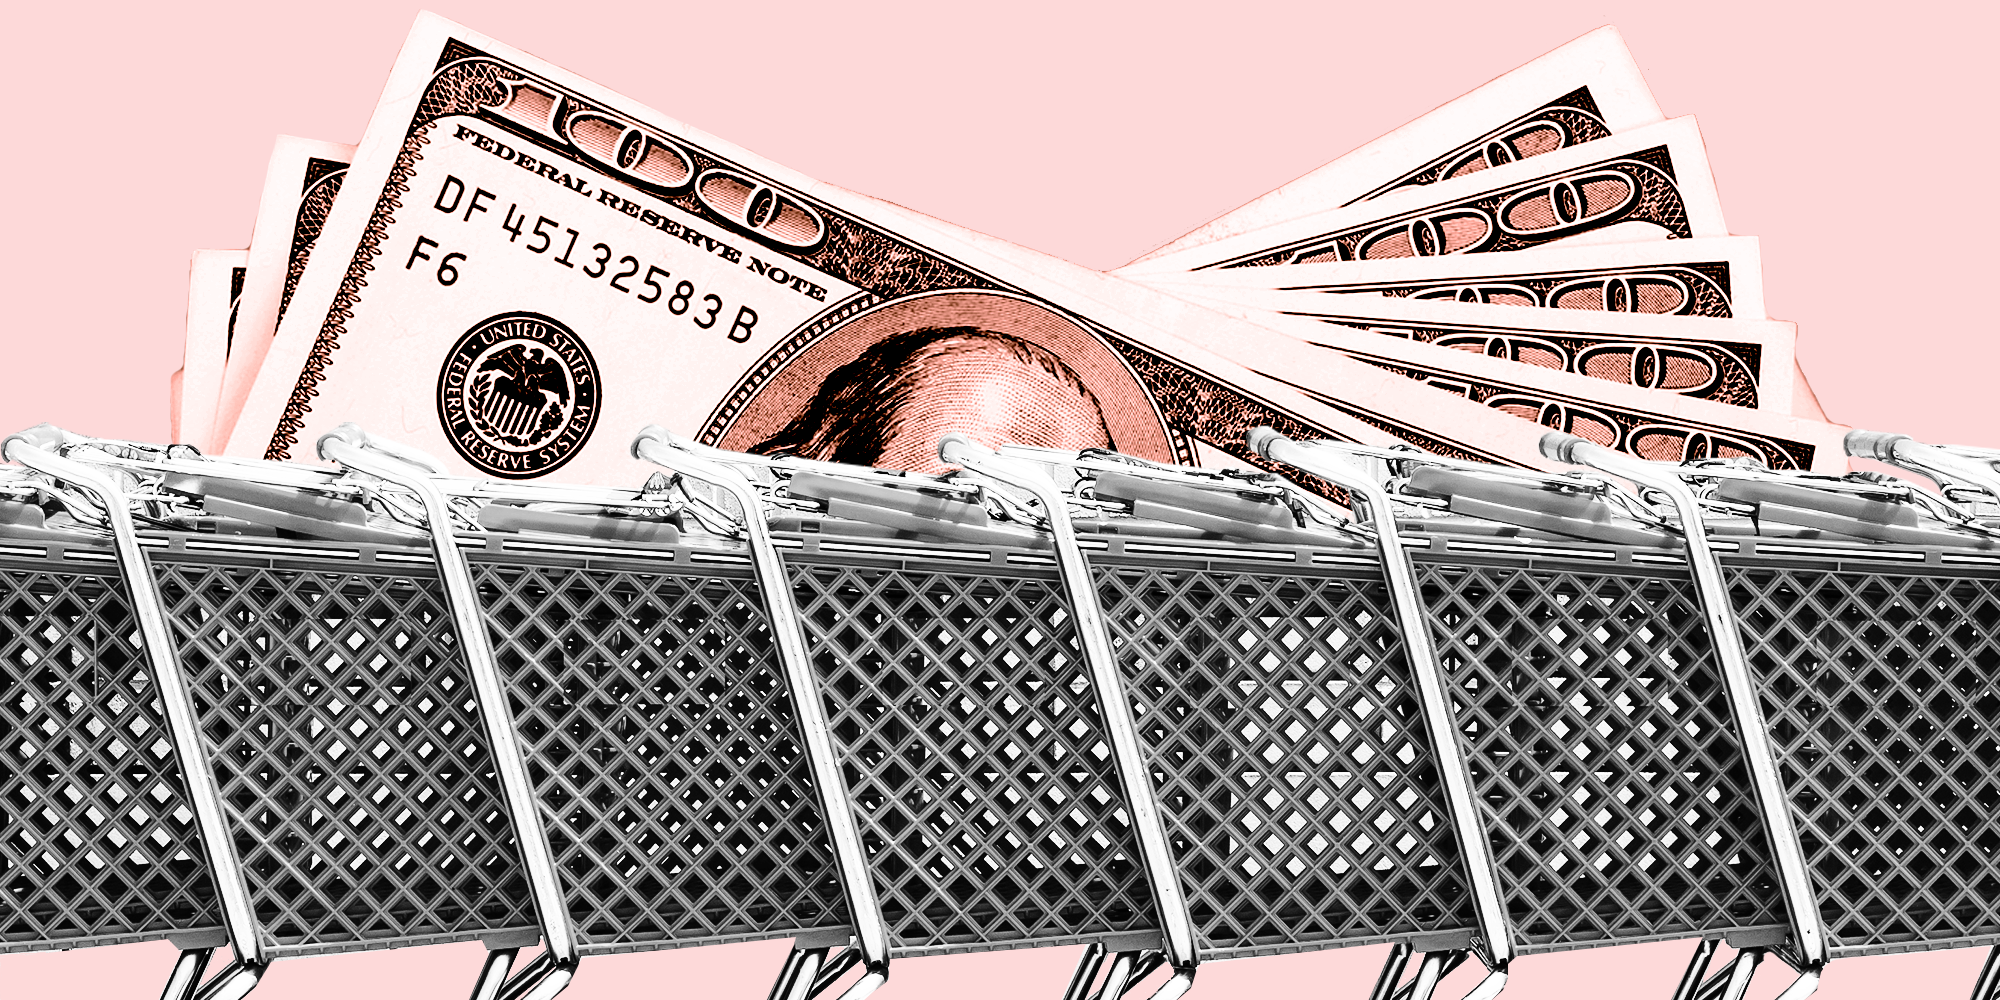 How to Cure Your (Target) Shopping Addiction - How to Stop Overspending